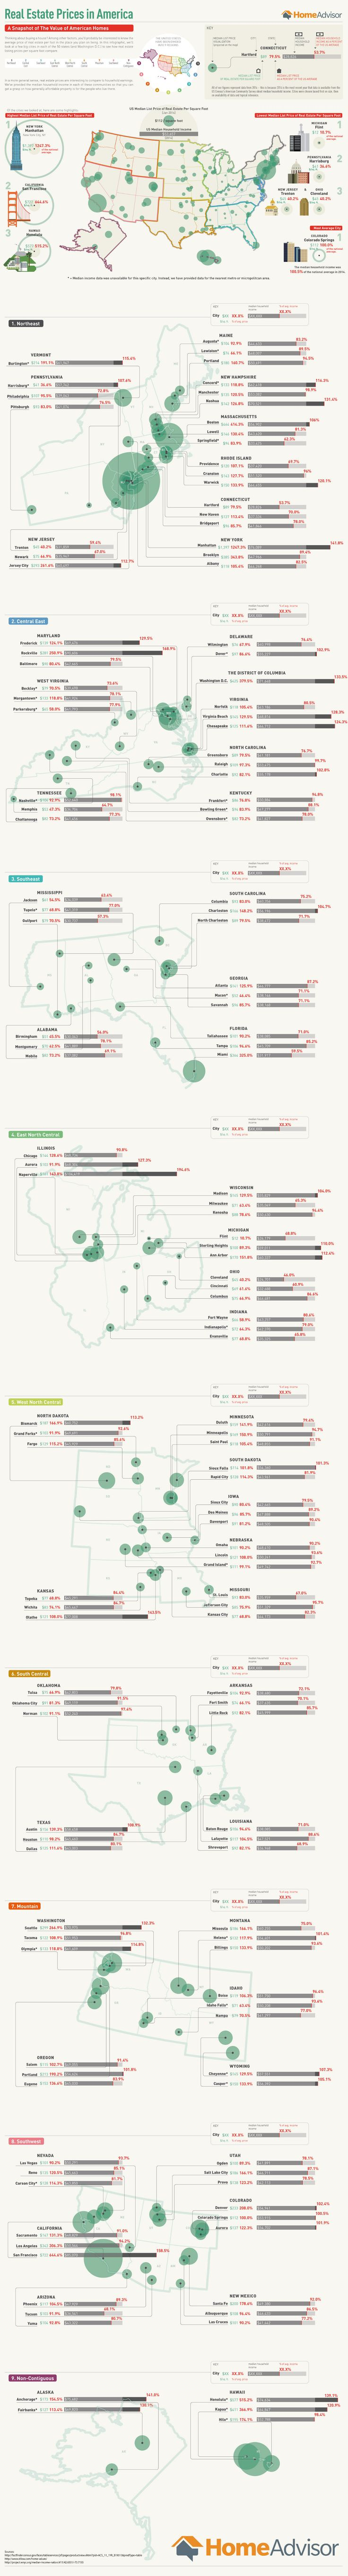 Real Estate Prices in America #Infographic #America #RealEstate